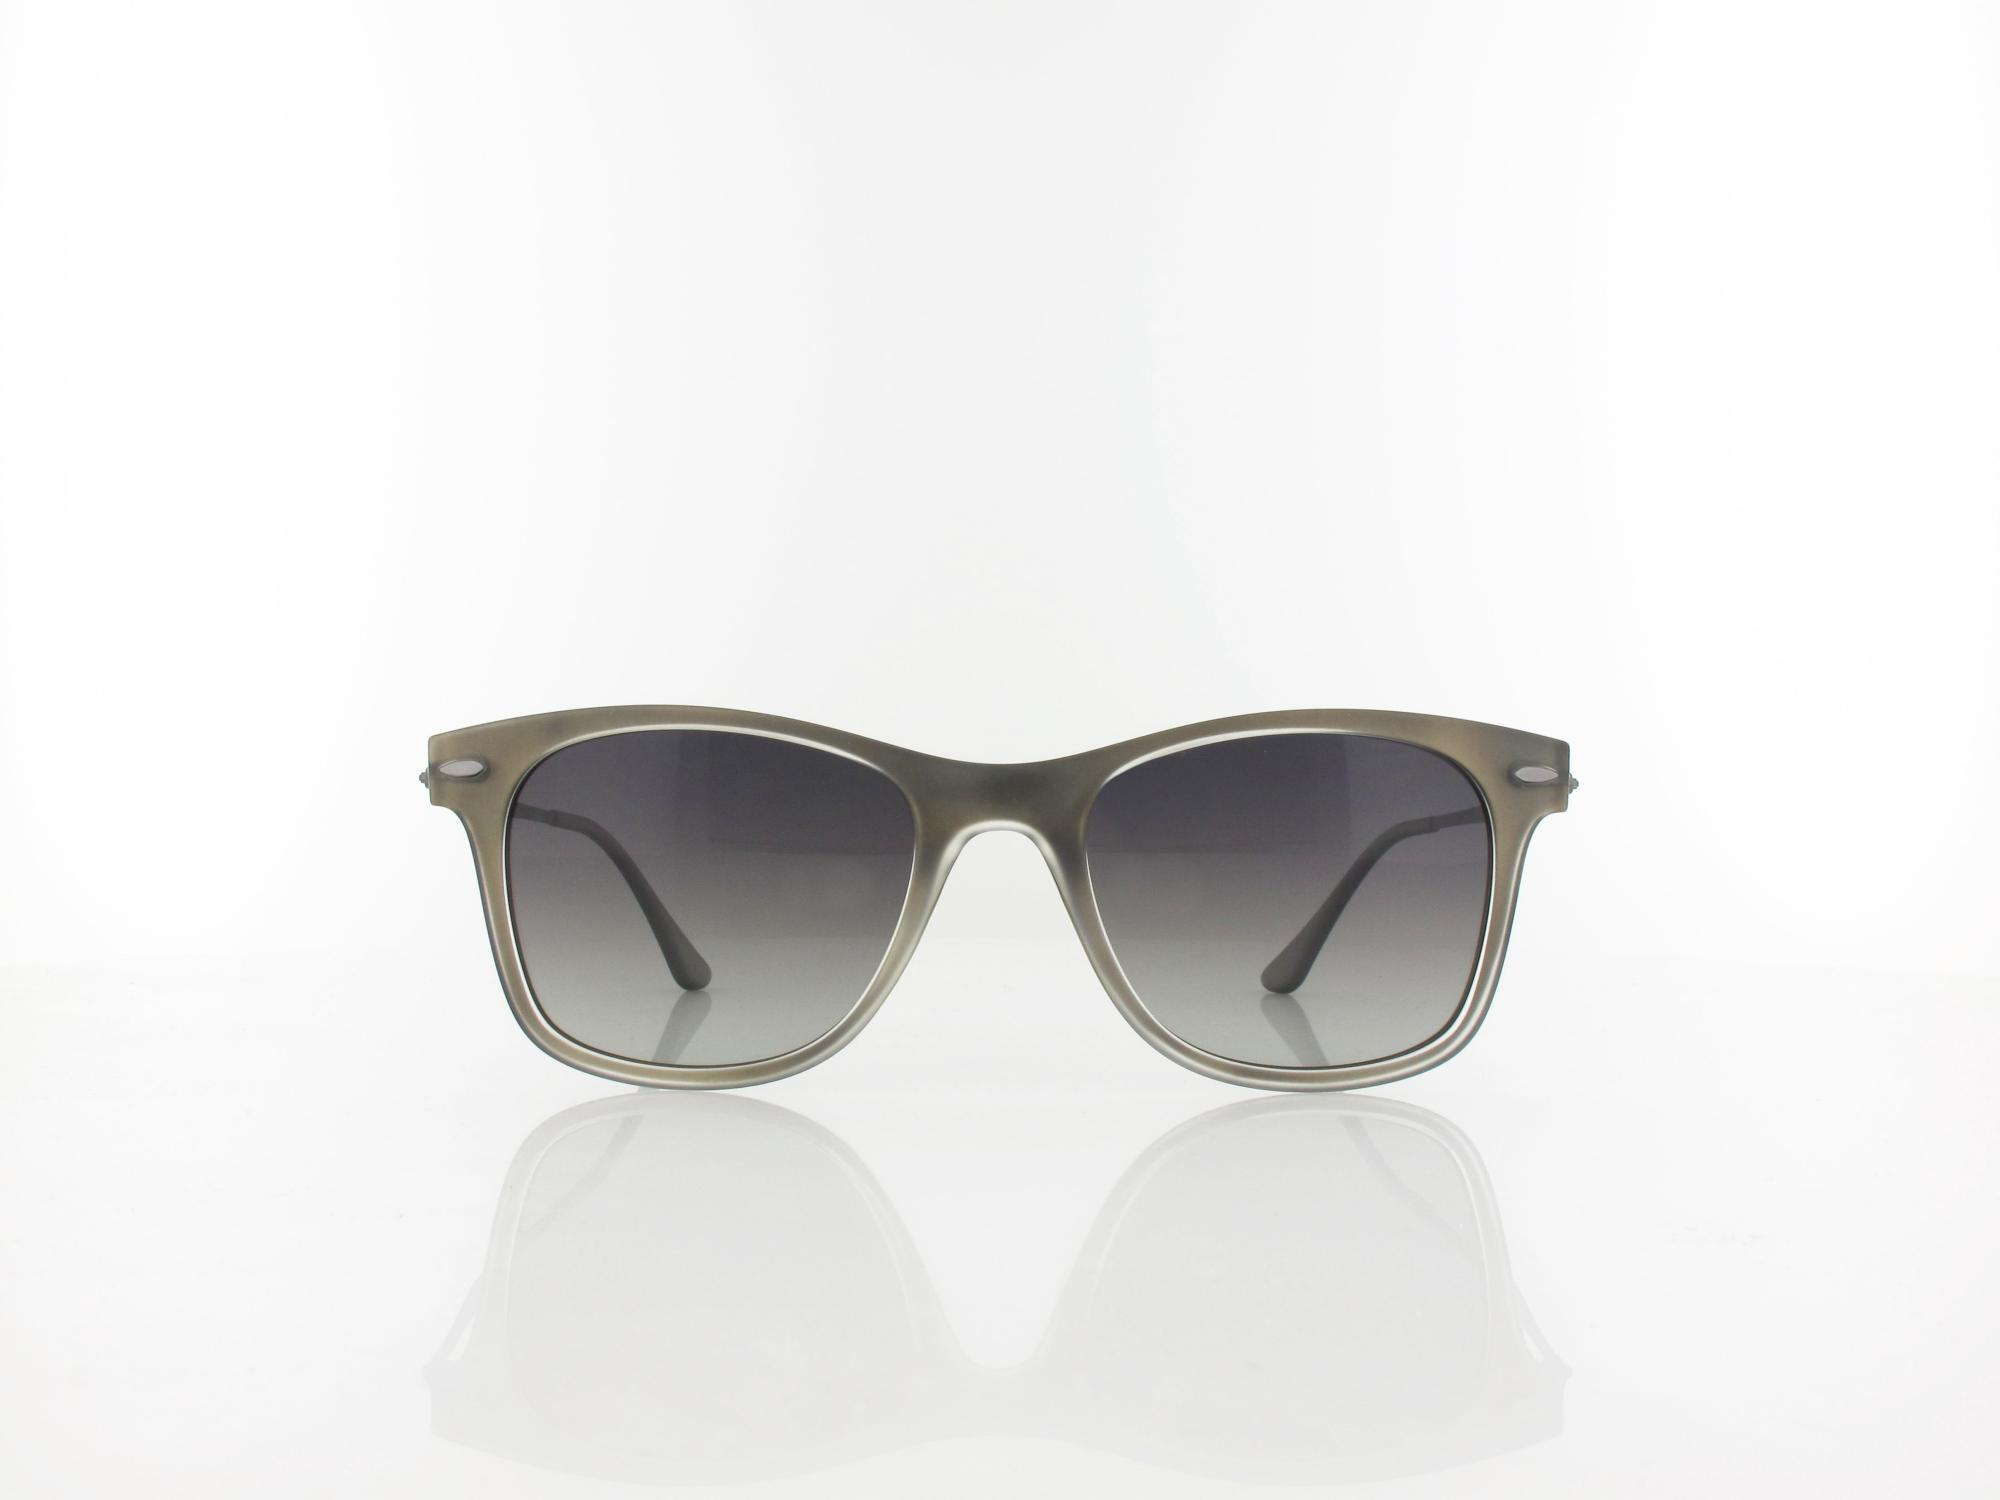 HIS polarized | HPS88115-4 52 | brown / smoke polarized